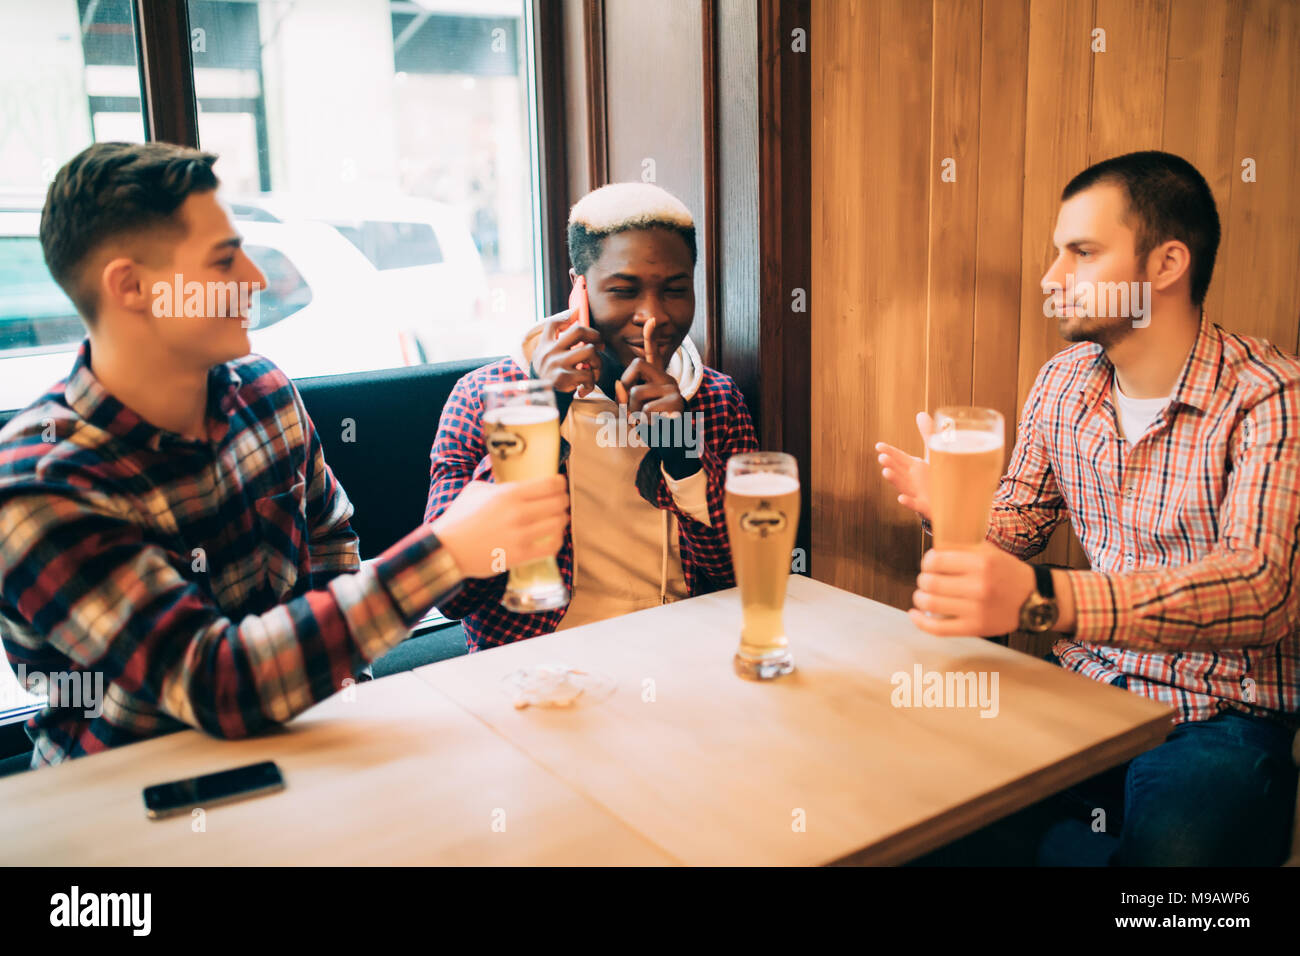 Two male friends in bar are drinking beer and communicating while one is talking on phone and asking for silence. - Stock Image